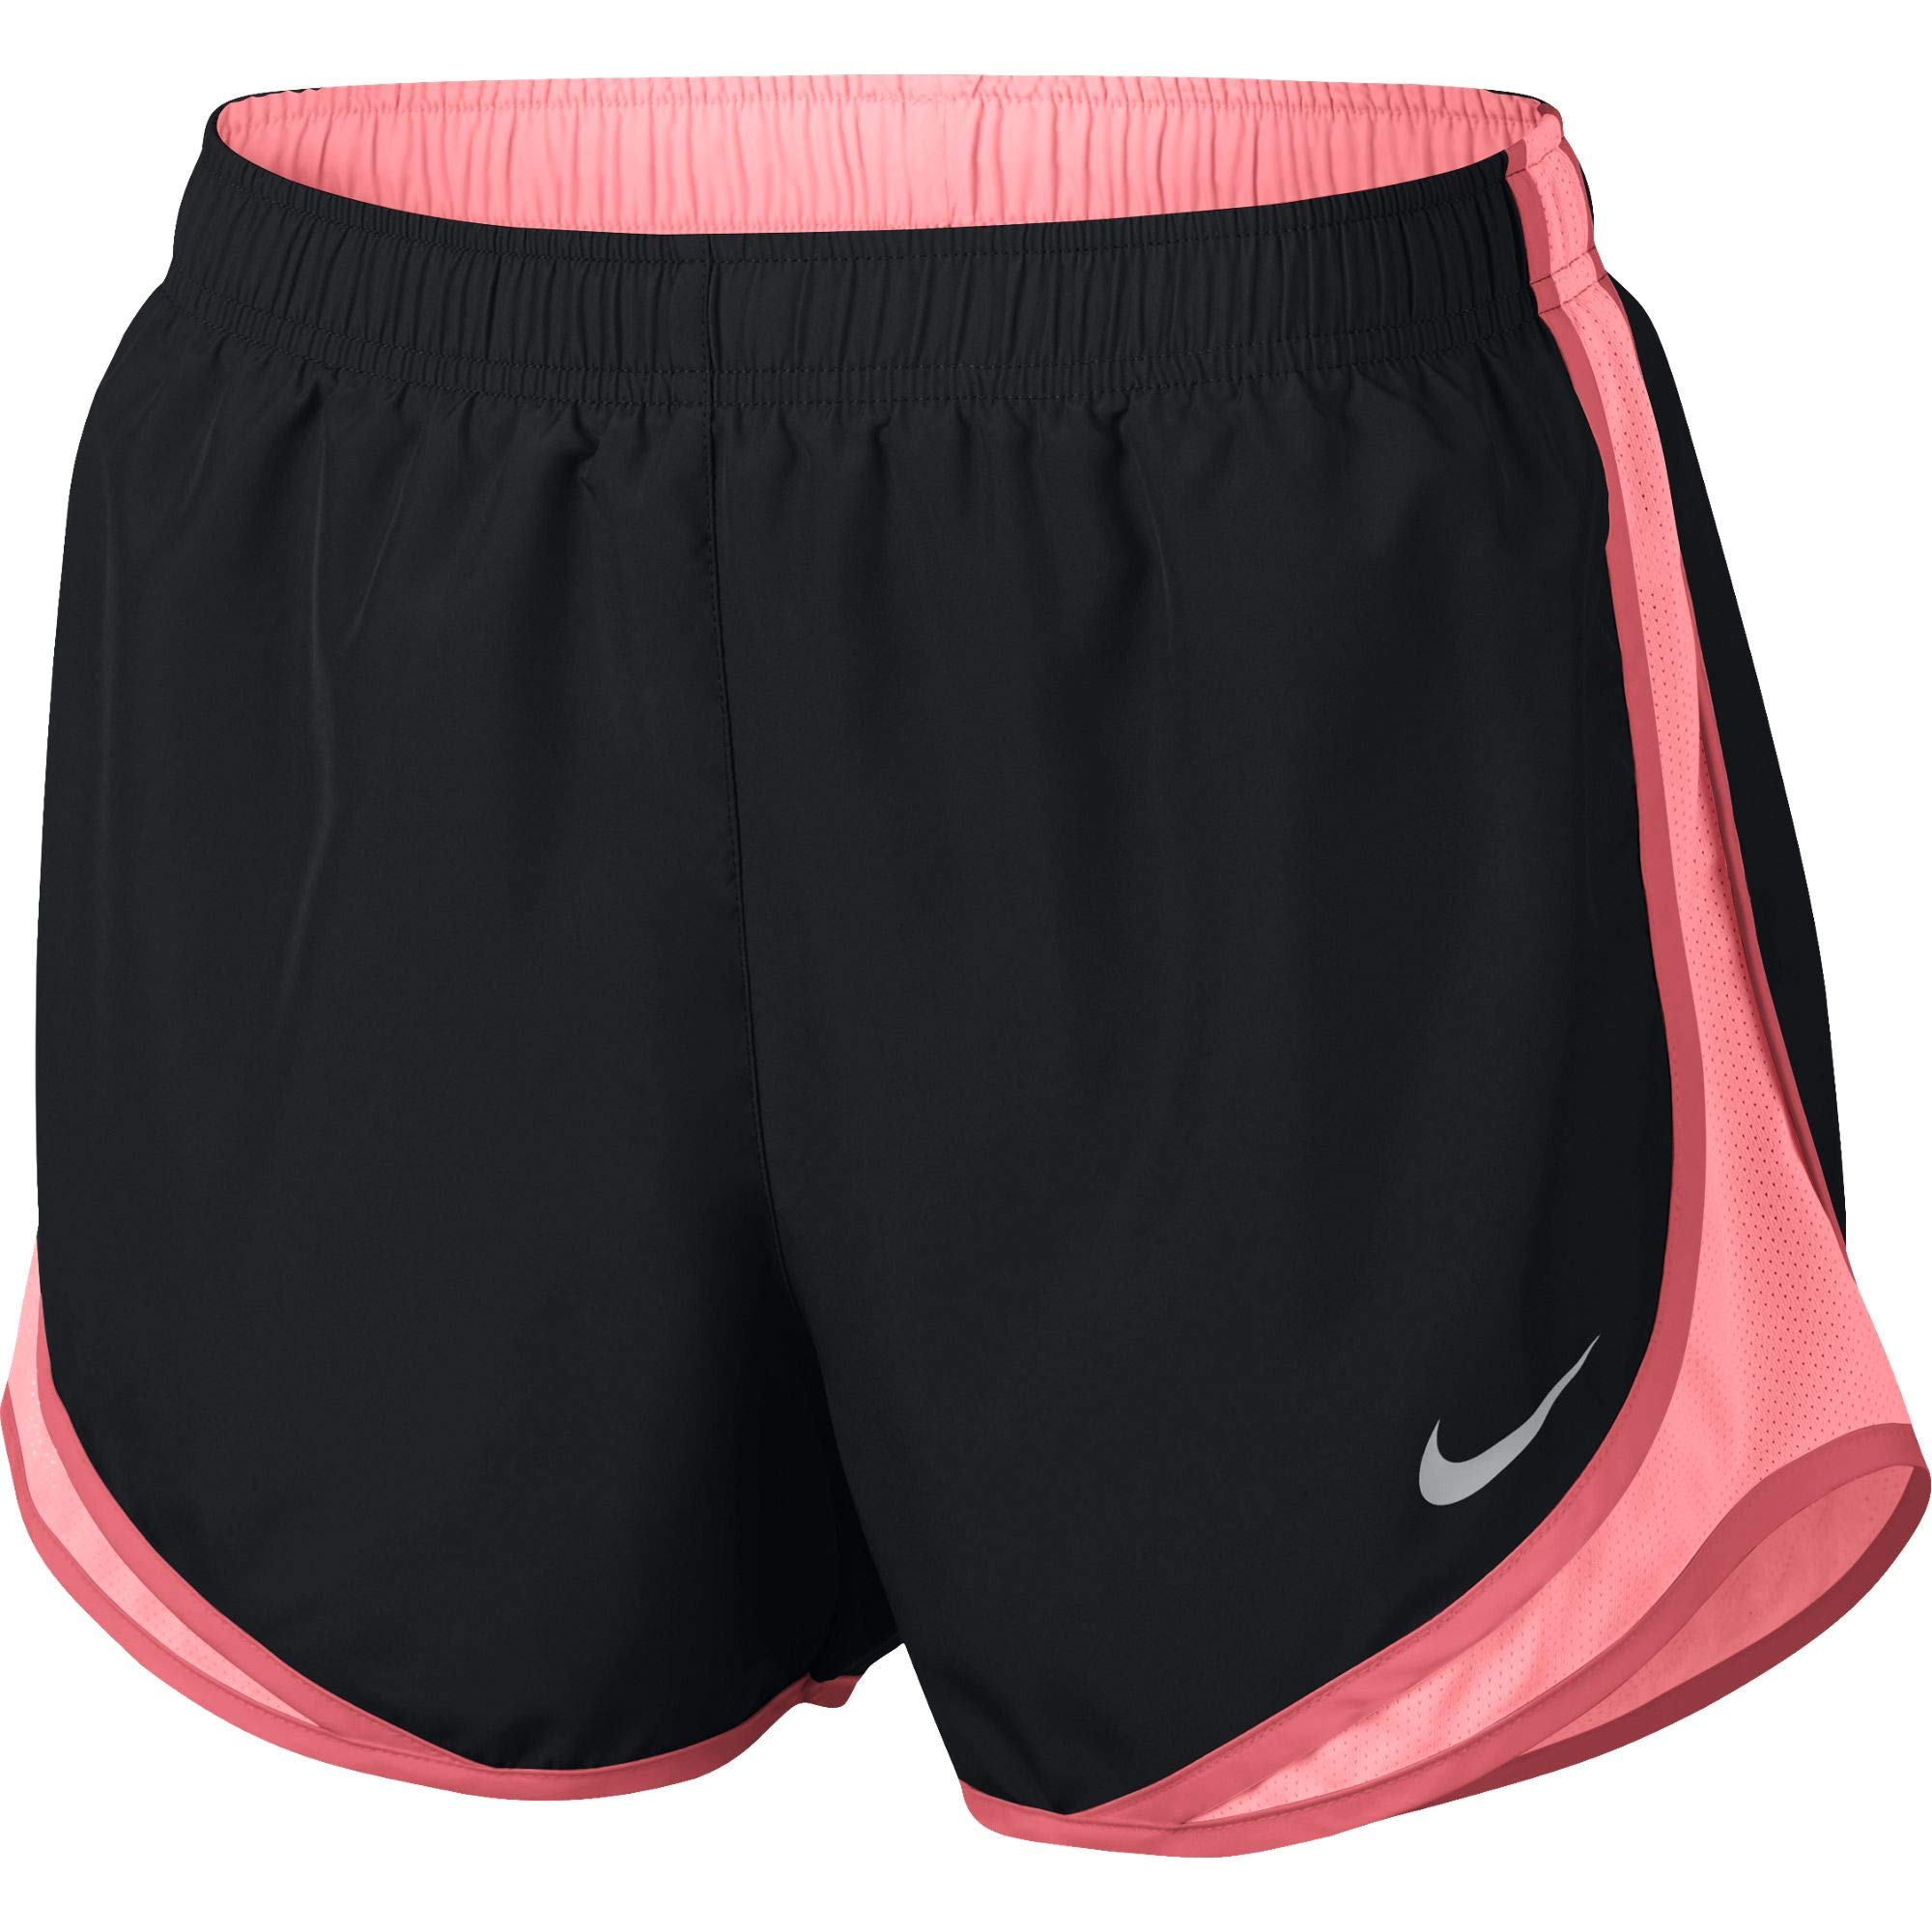 Nike Women's Tempo Running Shorts, Black/Pink Gaze/Ember Glow/Wolf Grey, Size X-Small